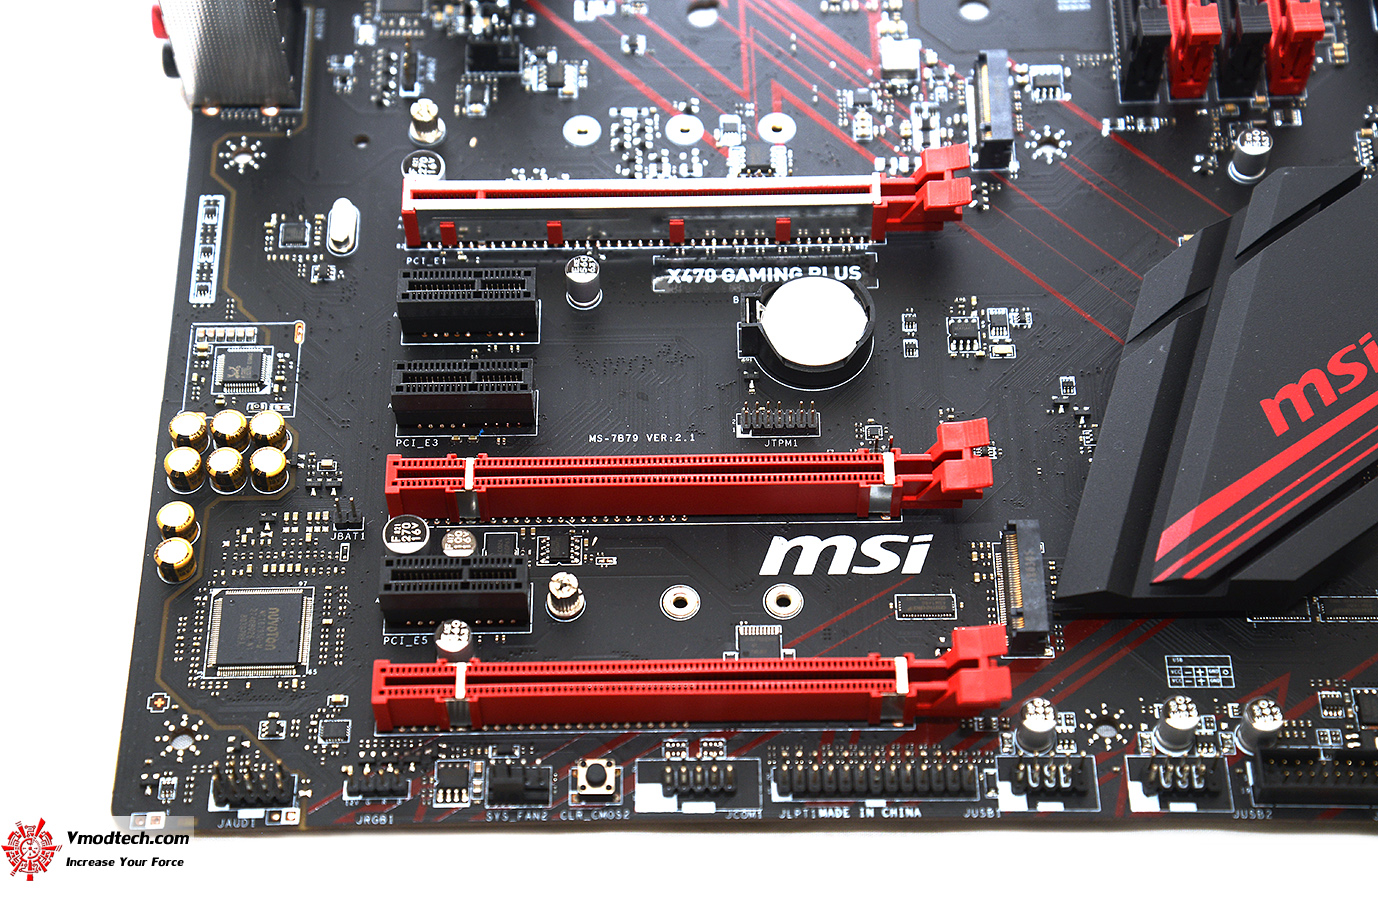 dsc 9568 MSI X470 GAMING PLUS REVIEW